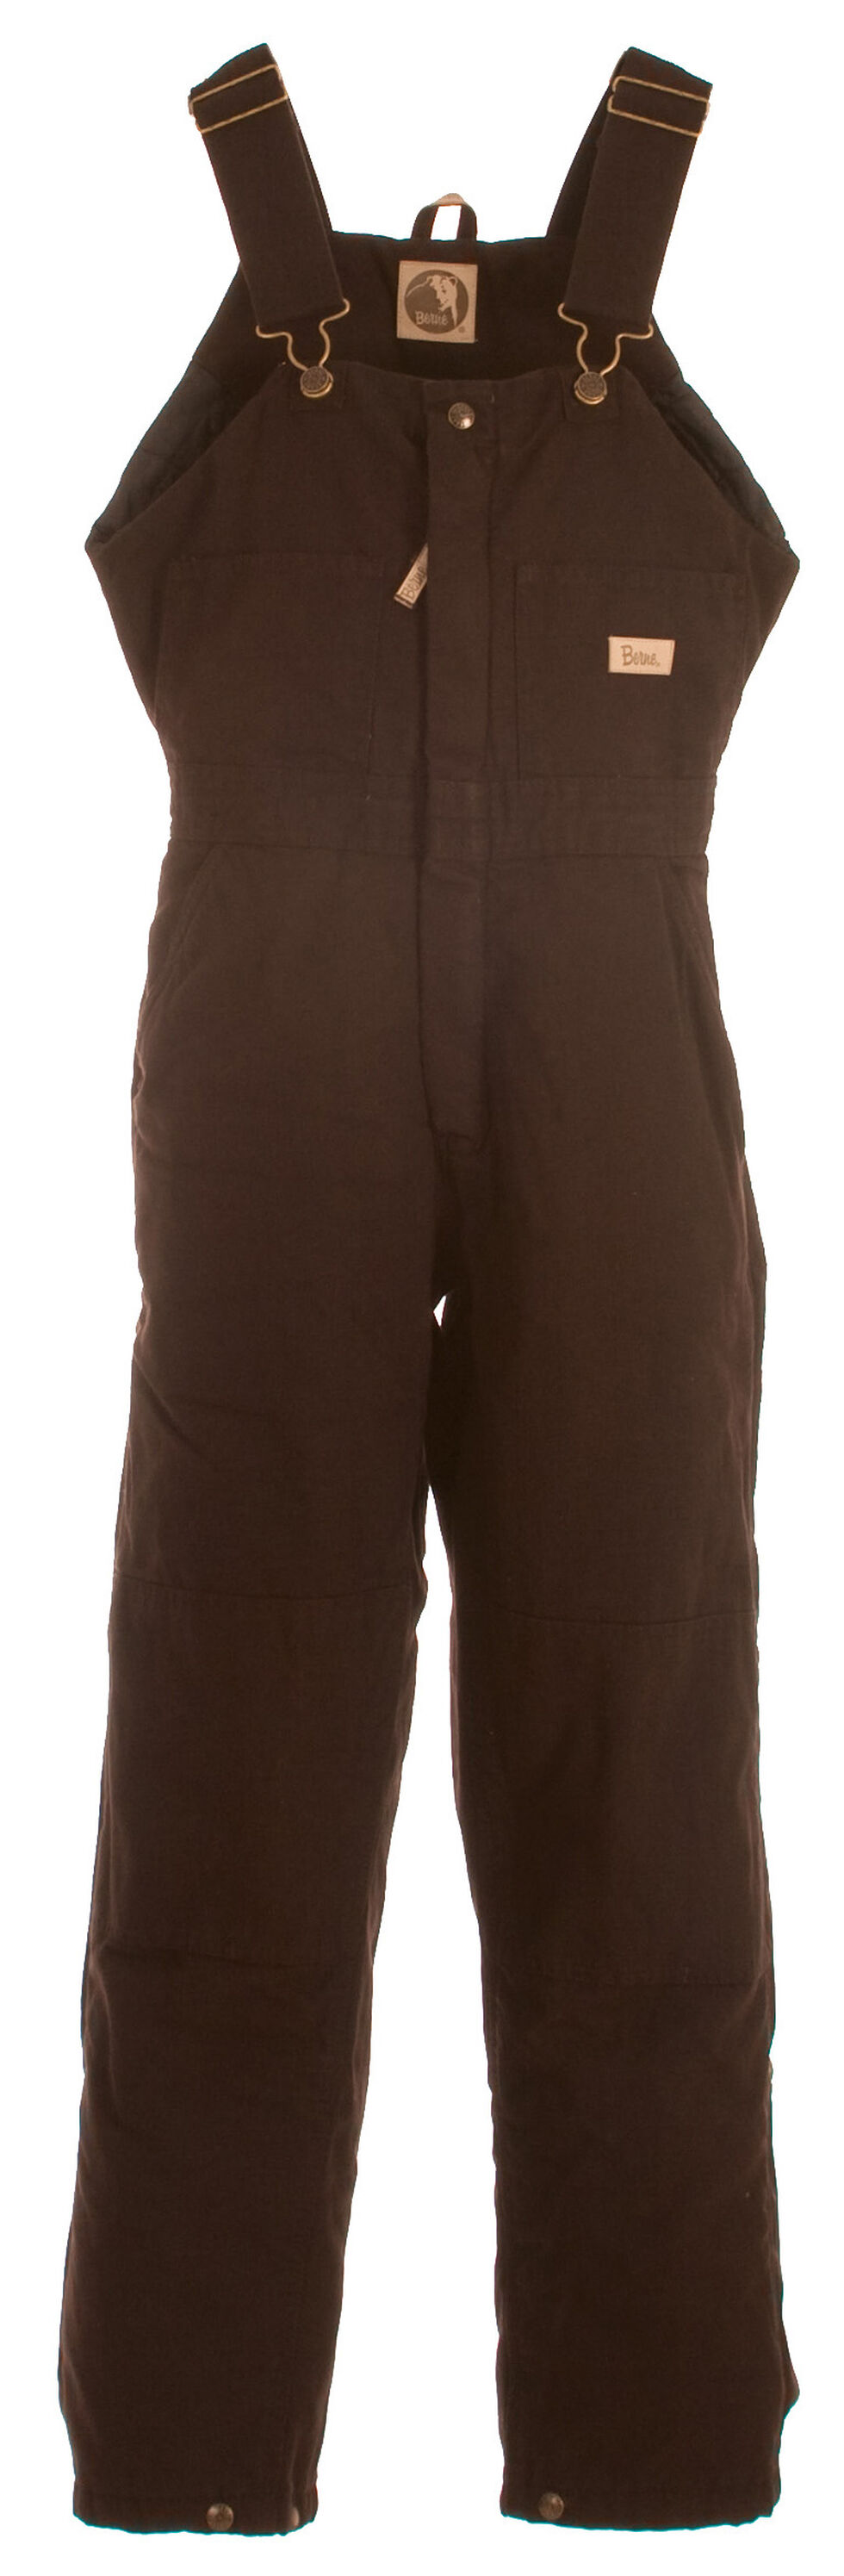 Berne Women's Washed Insulated Bib Overalls - Short, Dark Brown, hi-res